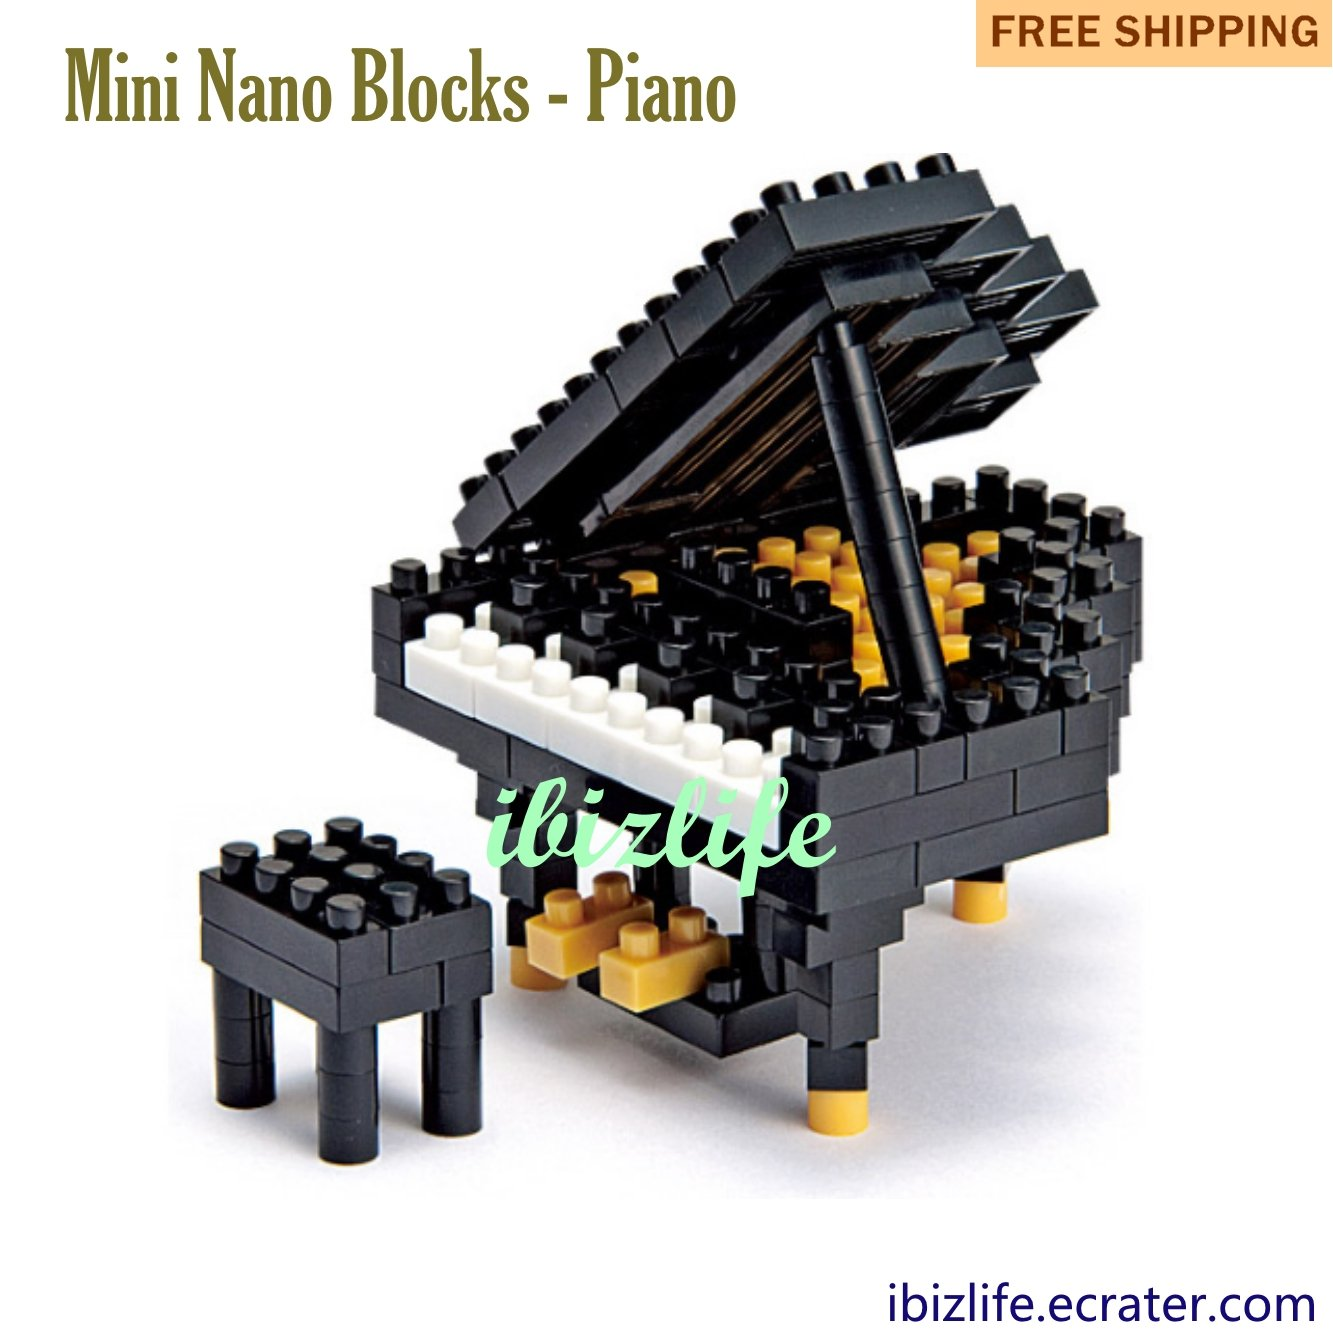 Piano: Diamond Blocks Mini Bricks Building Blocks DIY Education gifts - 110 pcs(BB01)